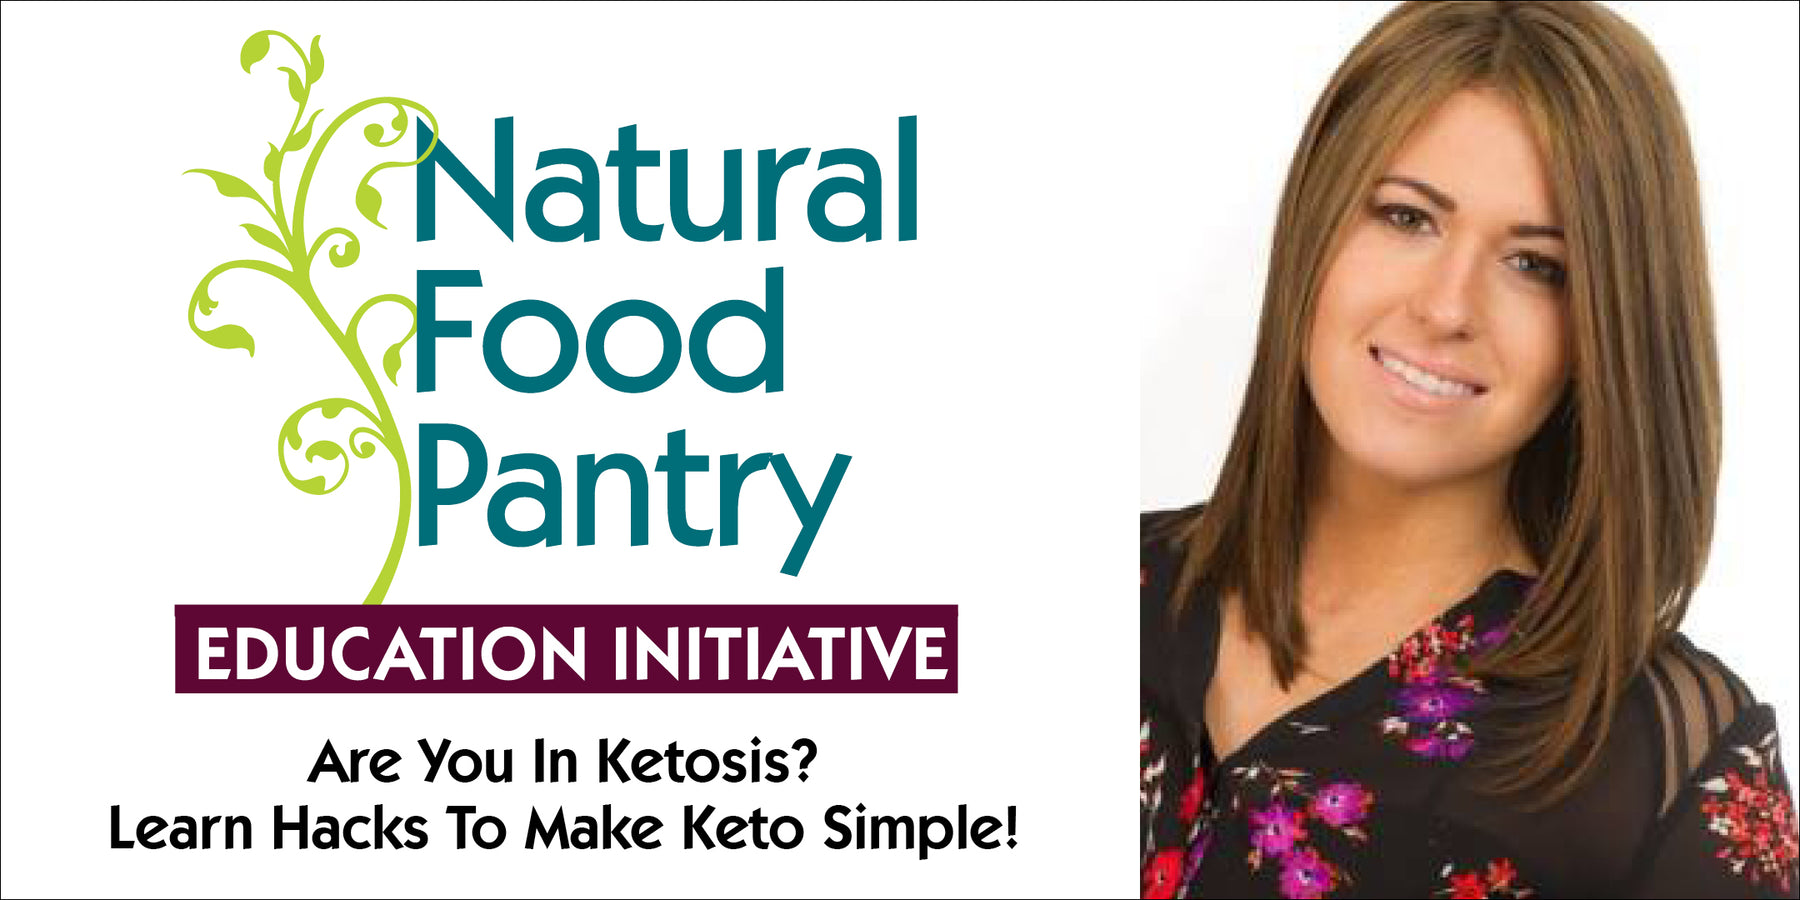 July 25 & Aug 2: Are You In Ketosis? Learn Hacks To Make Keto Simple